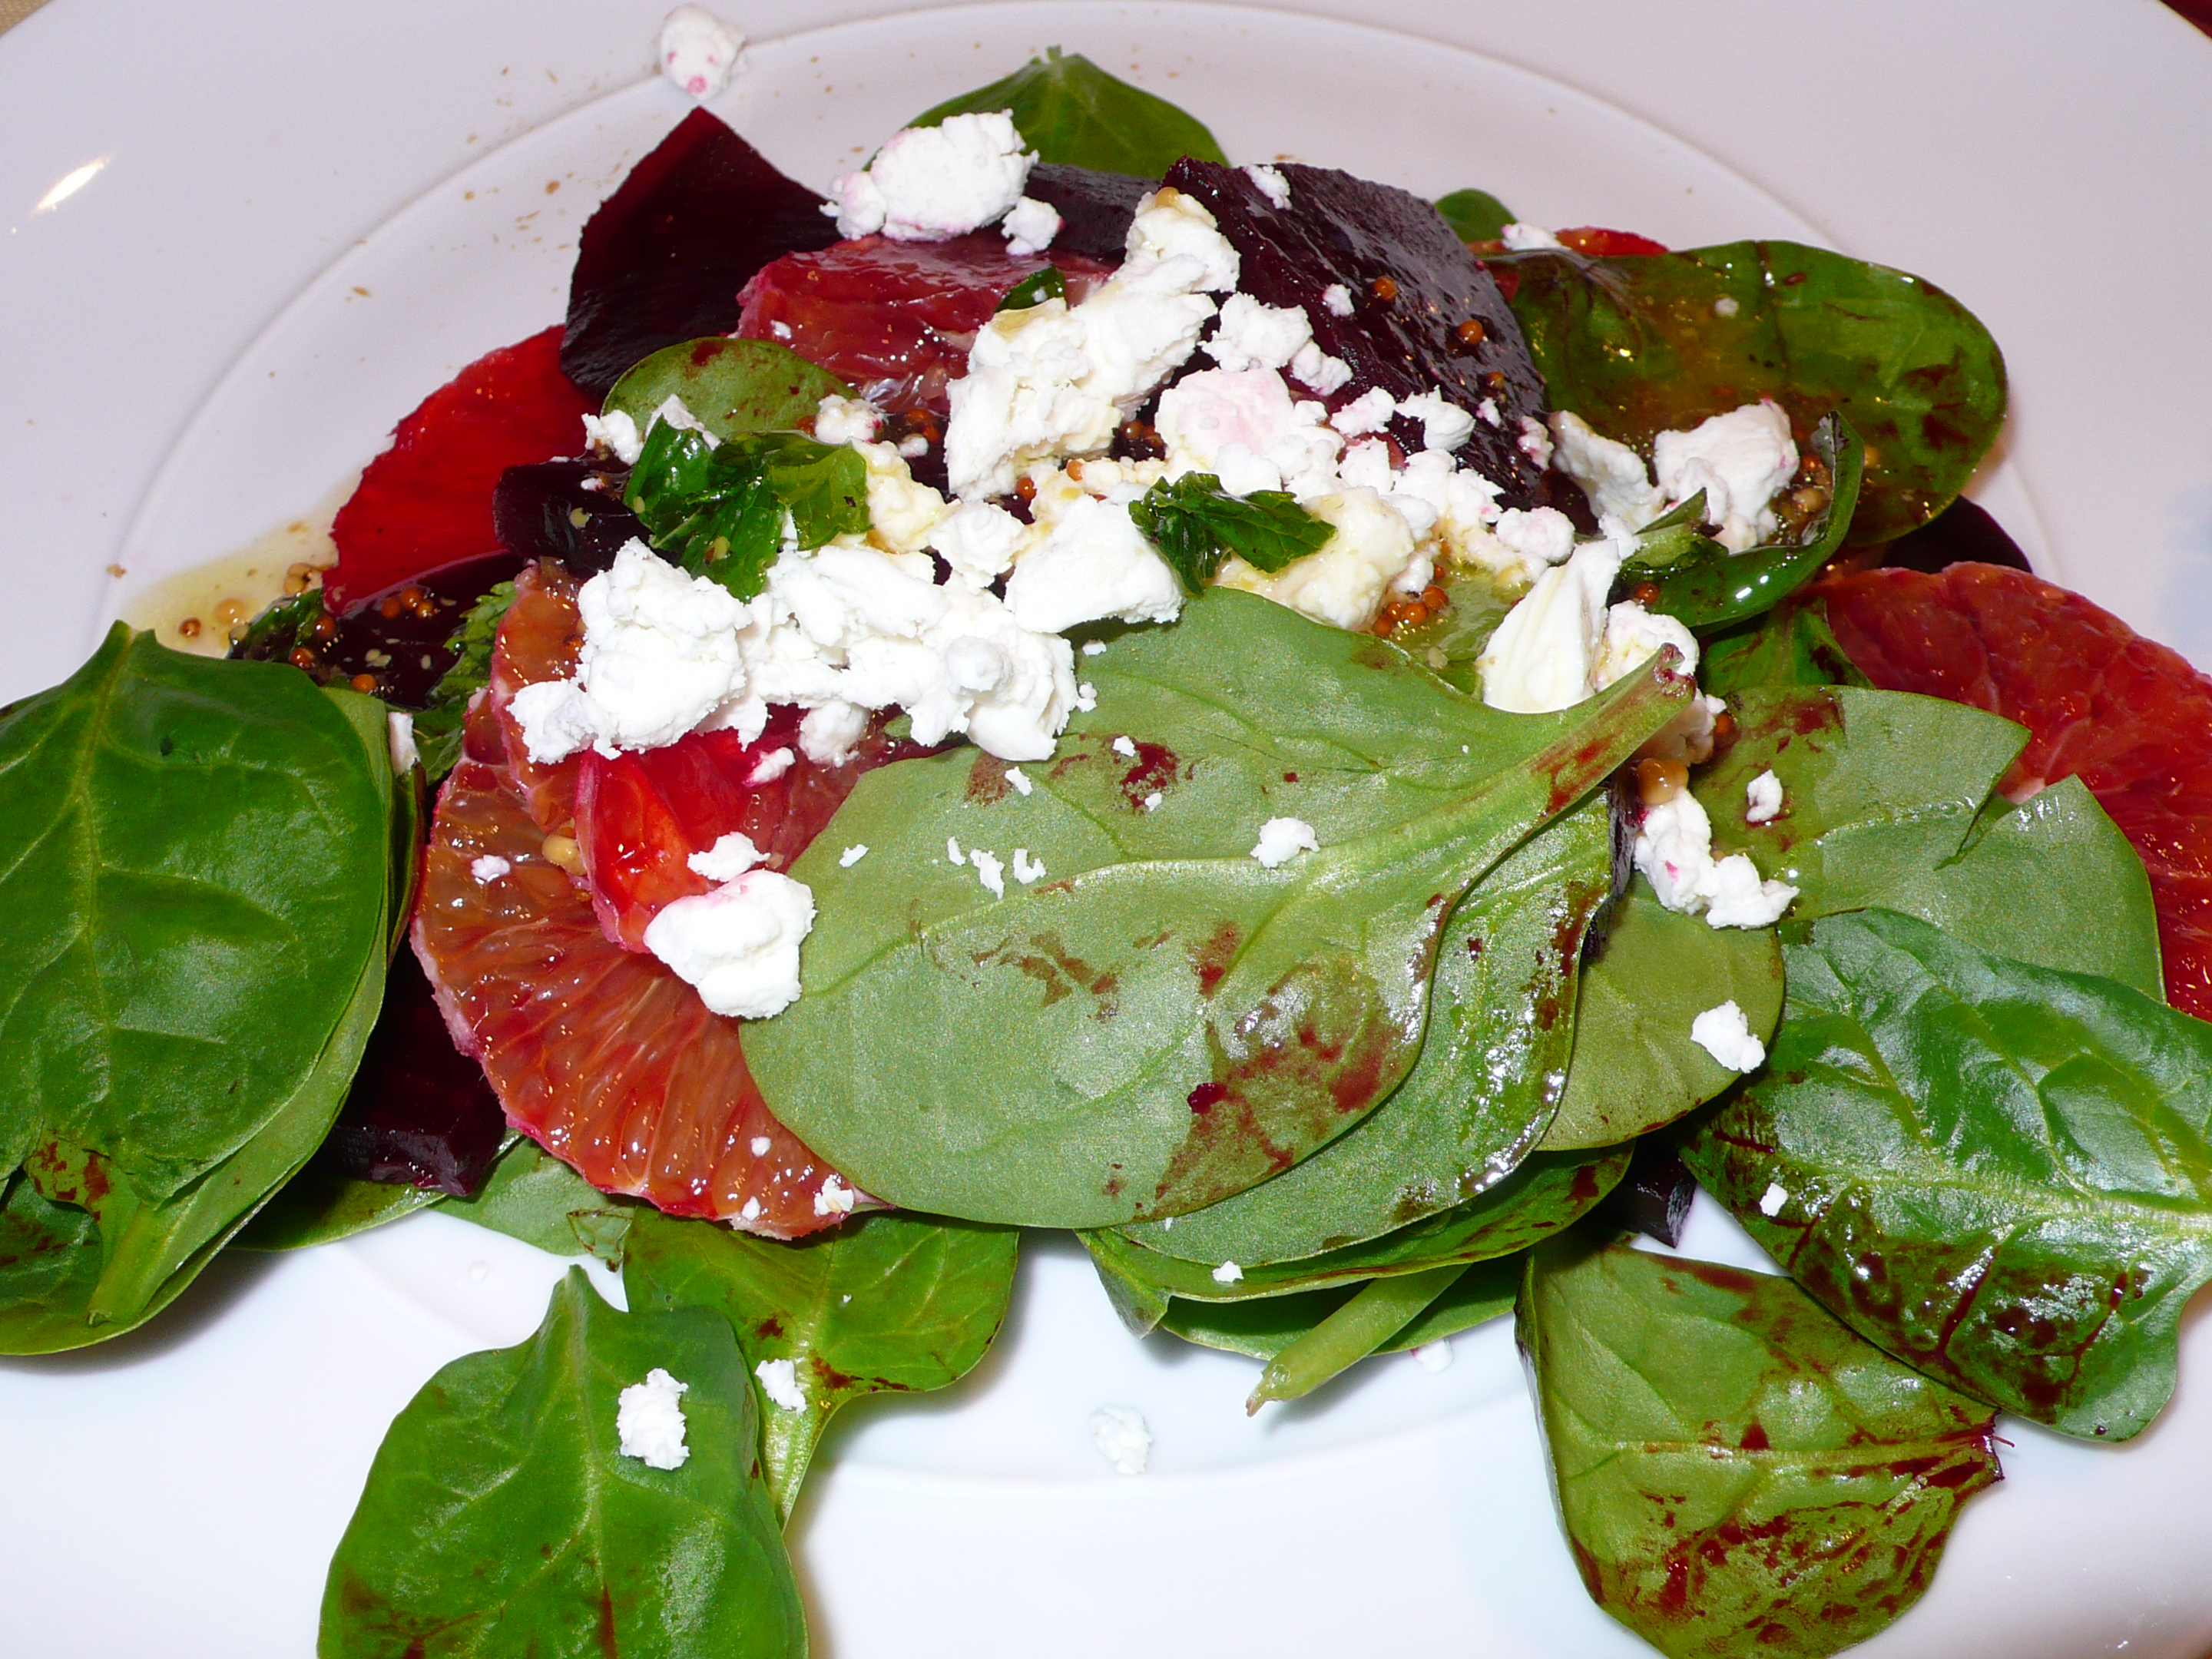 beet & blood orange salad with chèvre